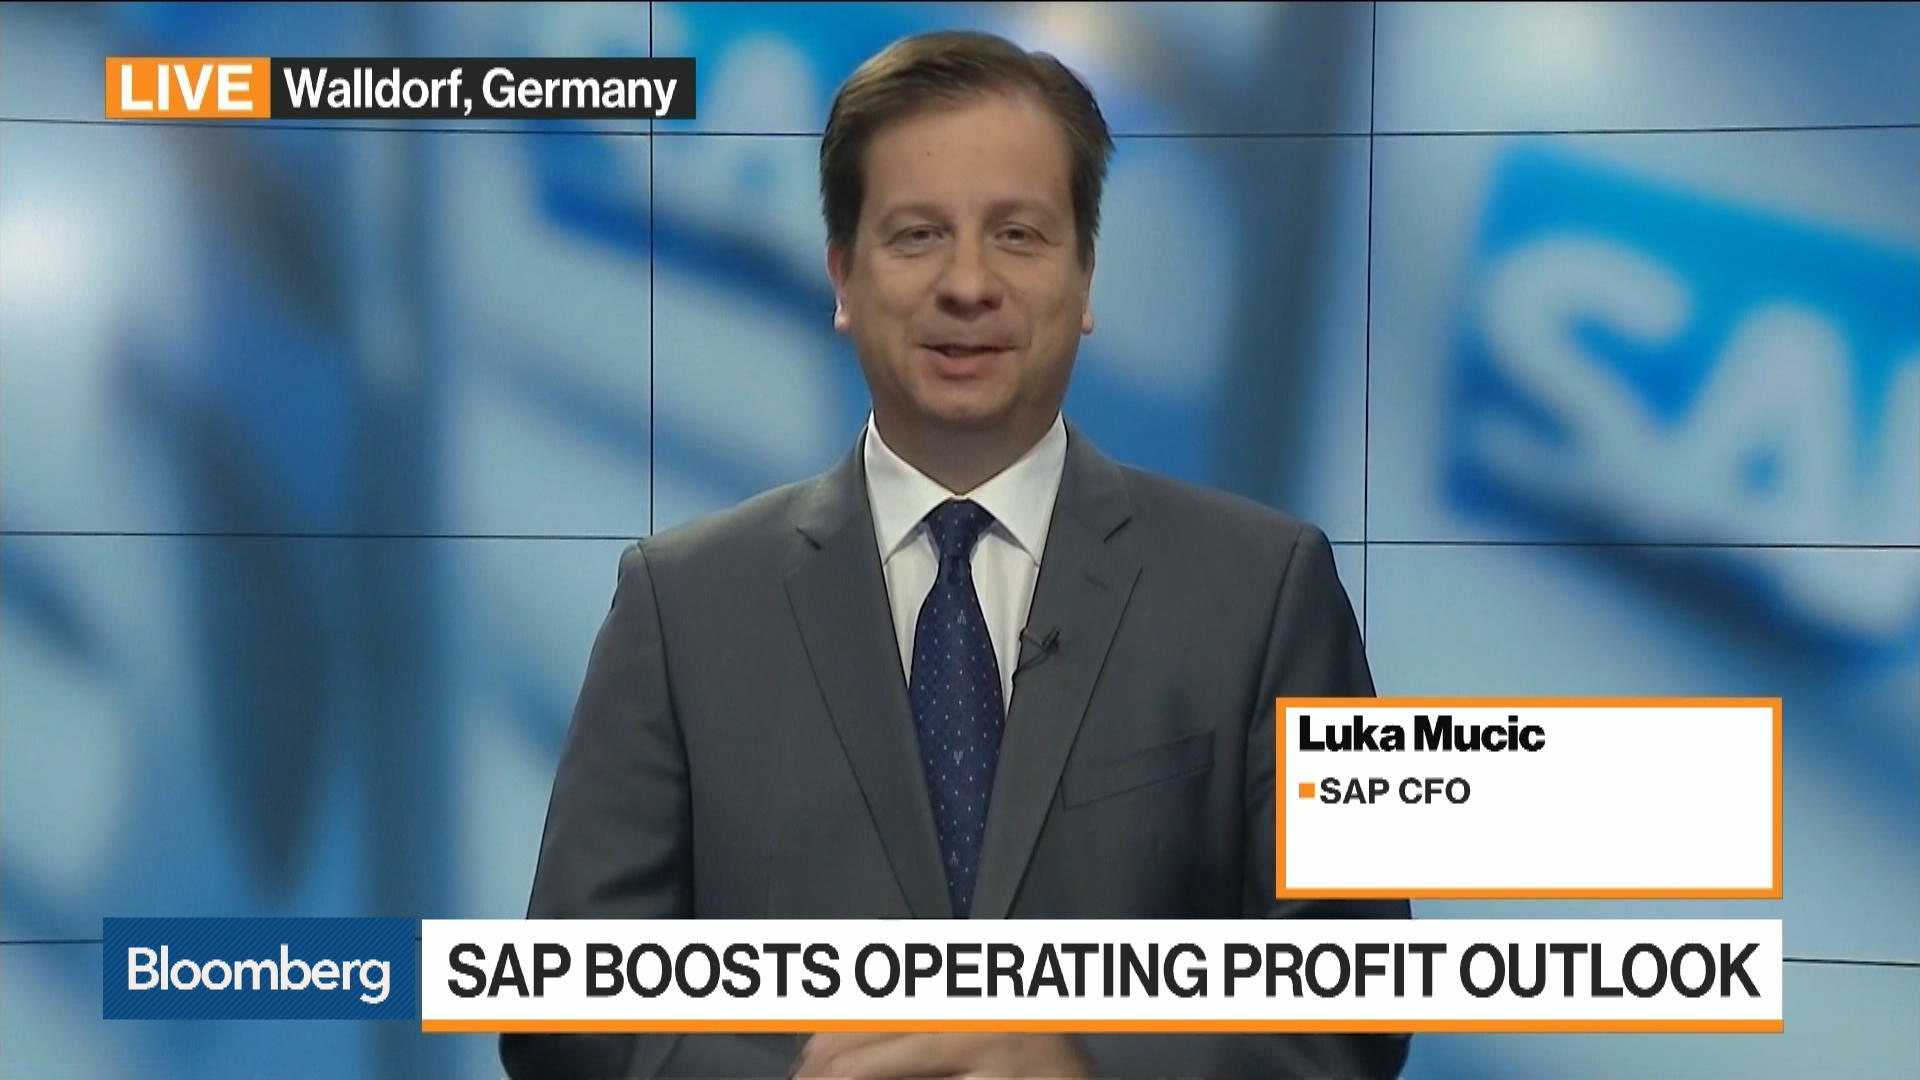 We Feel Extremely Strong About Where SAP Is Heading, Says CFO